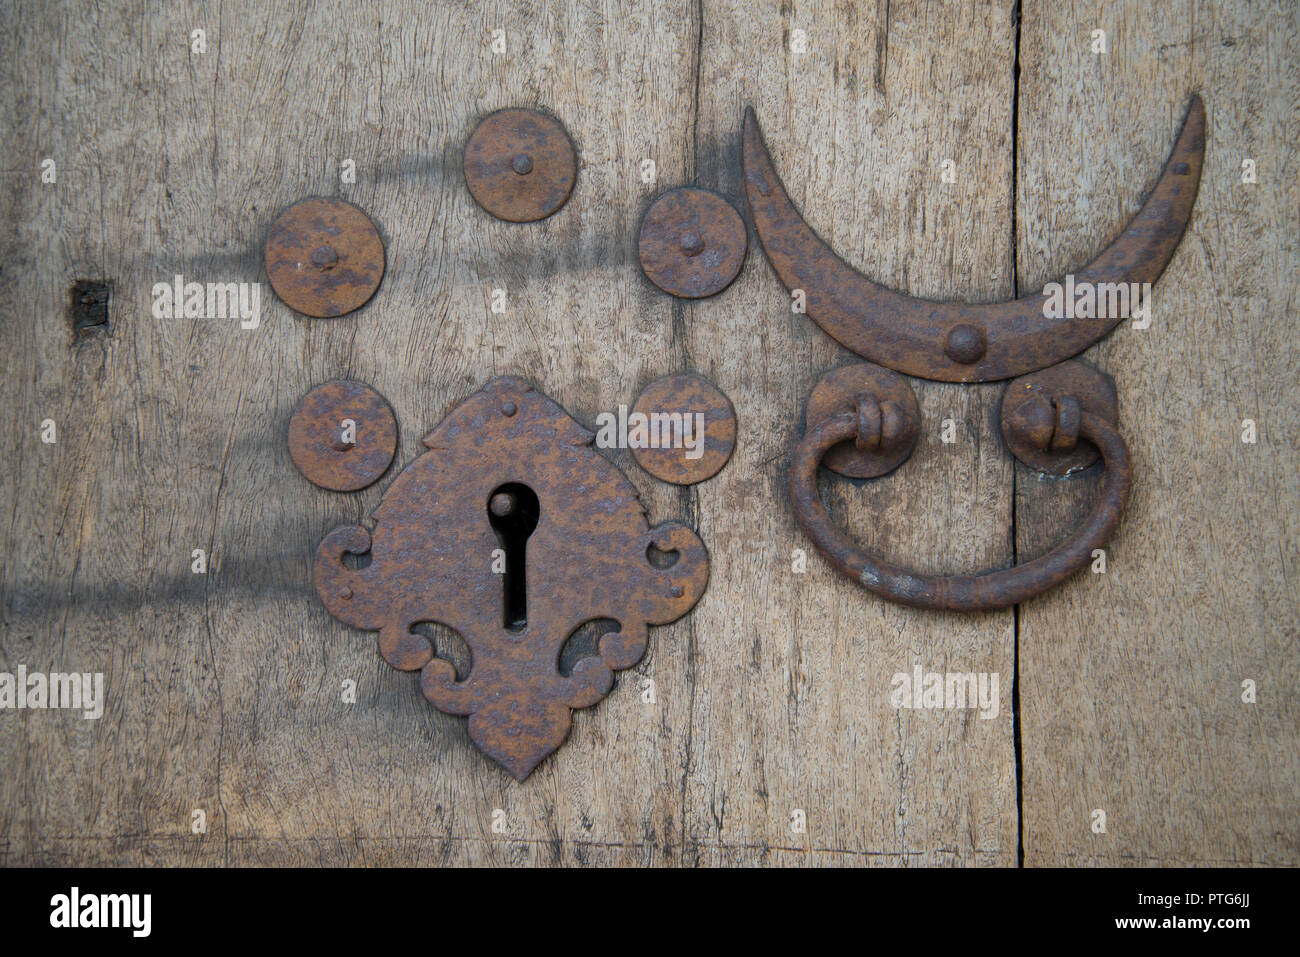 Indian antique door furniture and lock - Stock Image